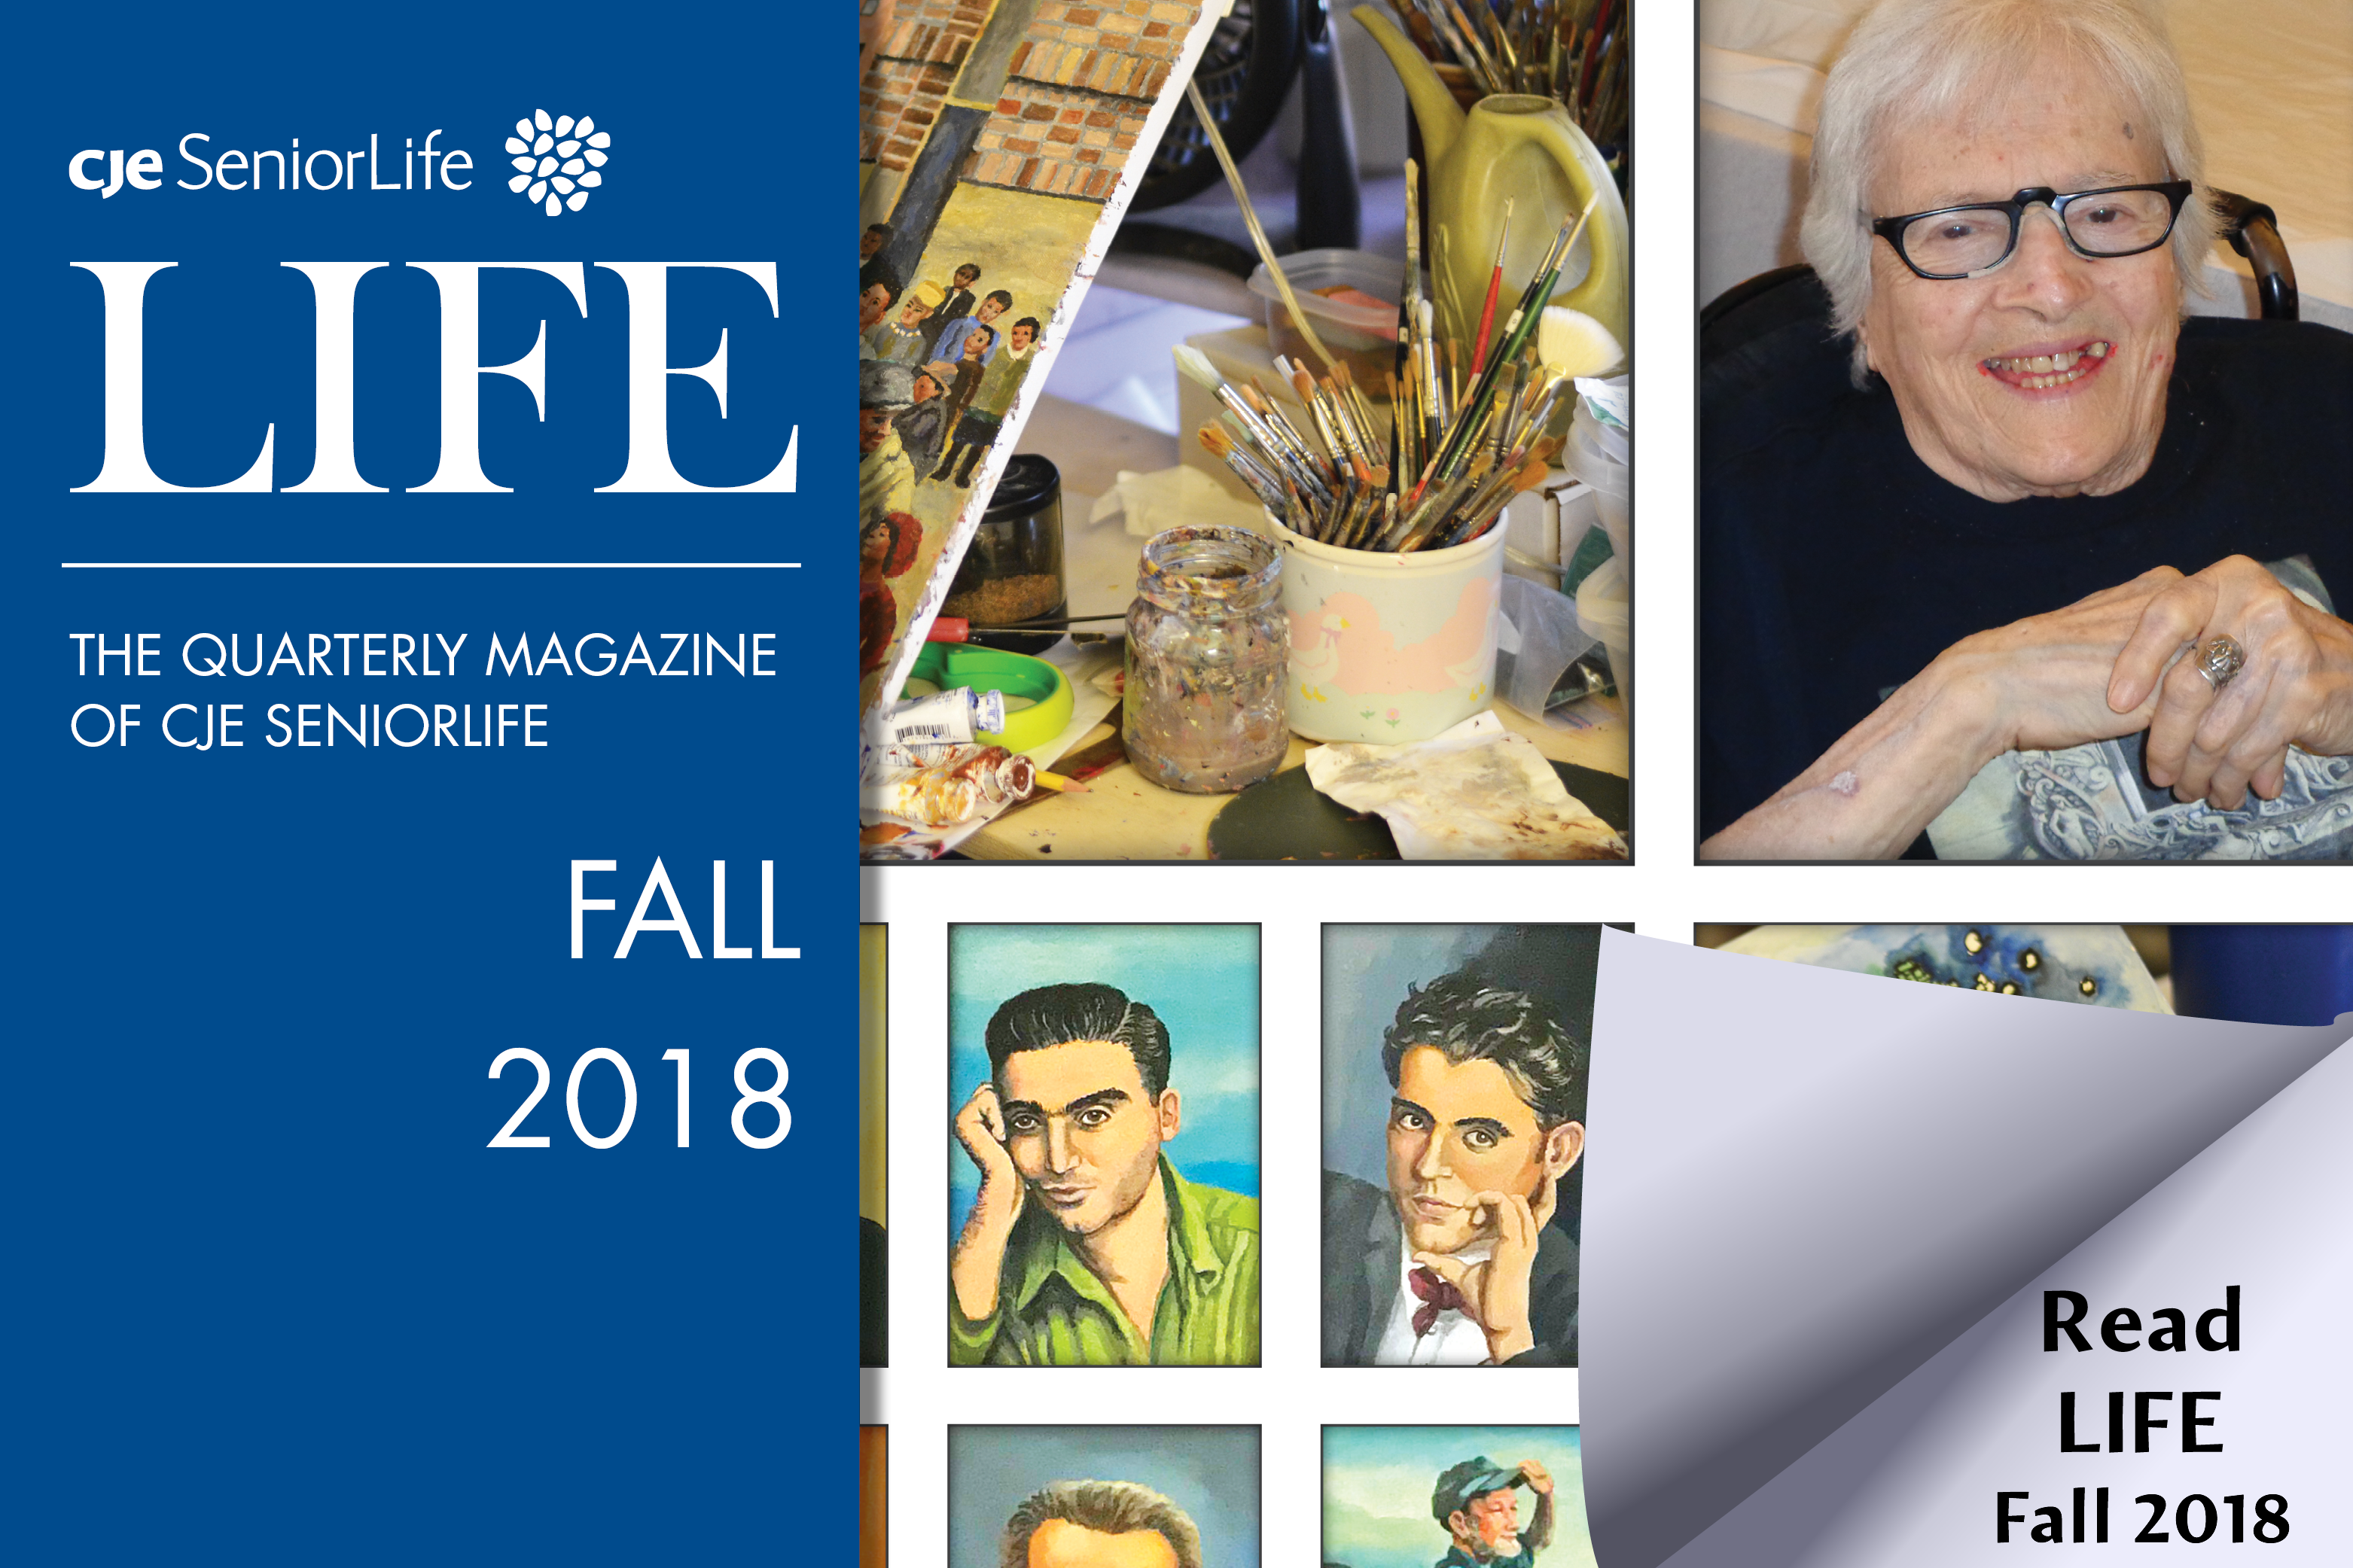 Life Fall 2018 Issue